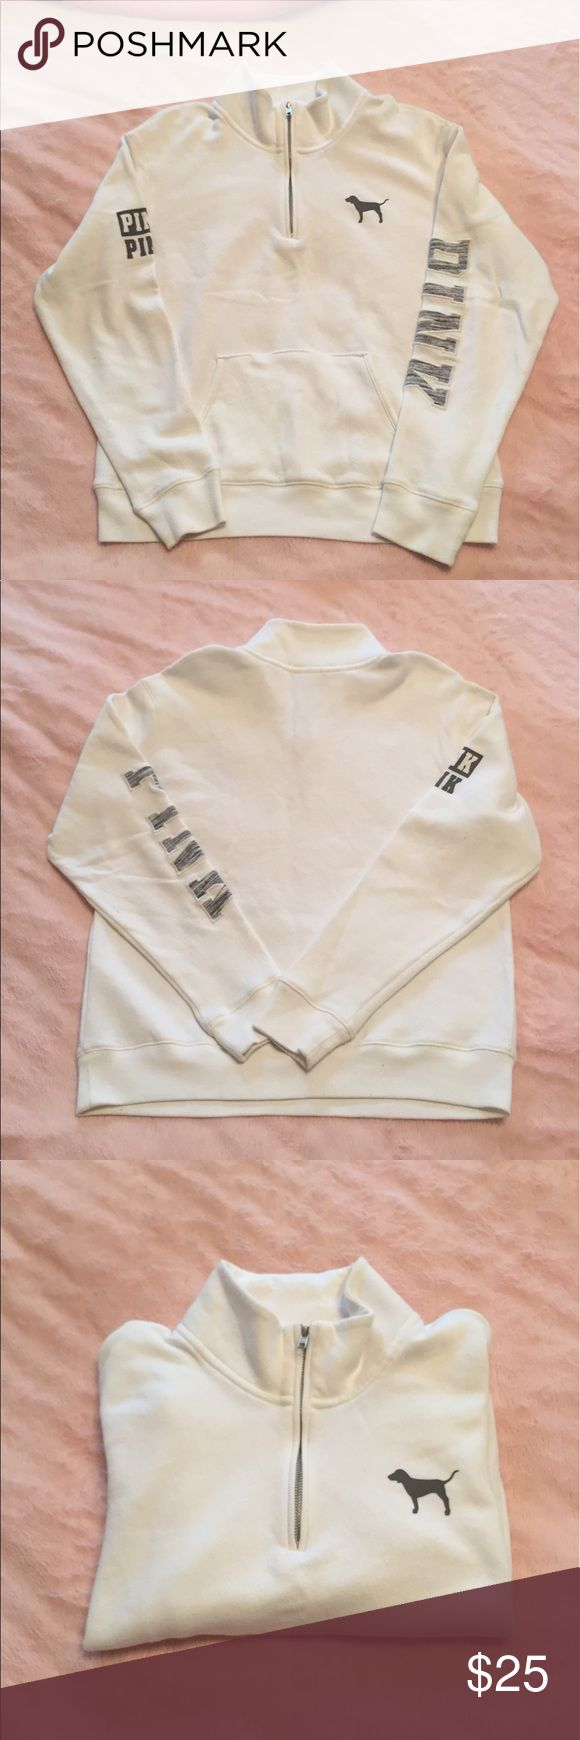 Victoria's Secret PINK quarter zip up jacket This is is good condition. Size small. Originally purchased for $50 This is an off white almost cream color. PINK Victoria's Secret Tops Sweatshirts & Hoodies